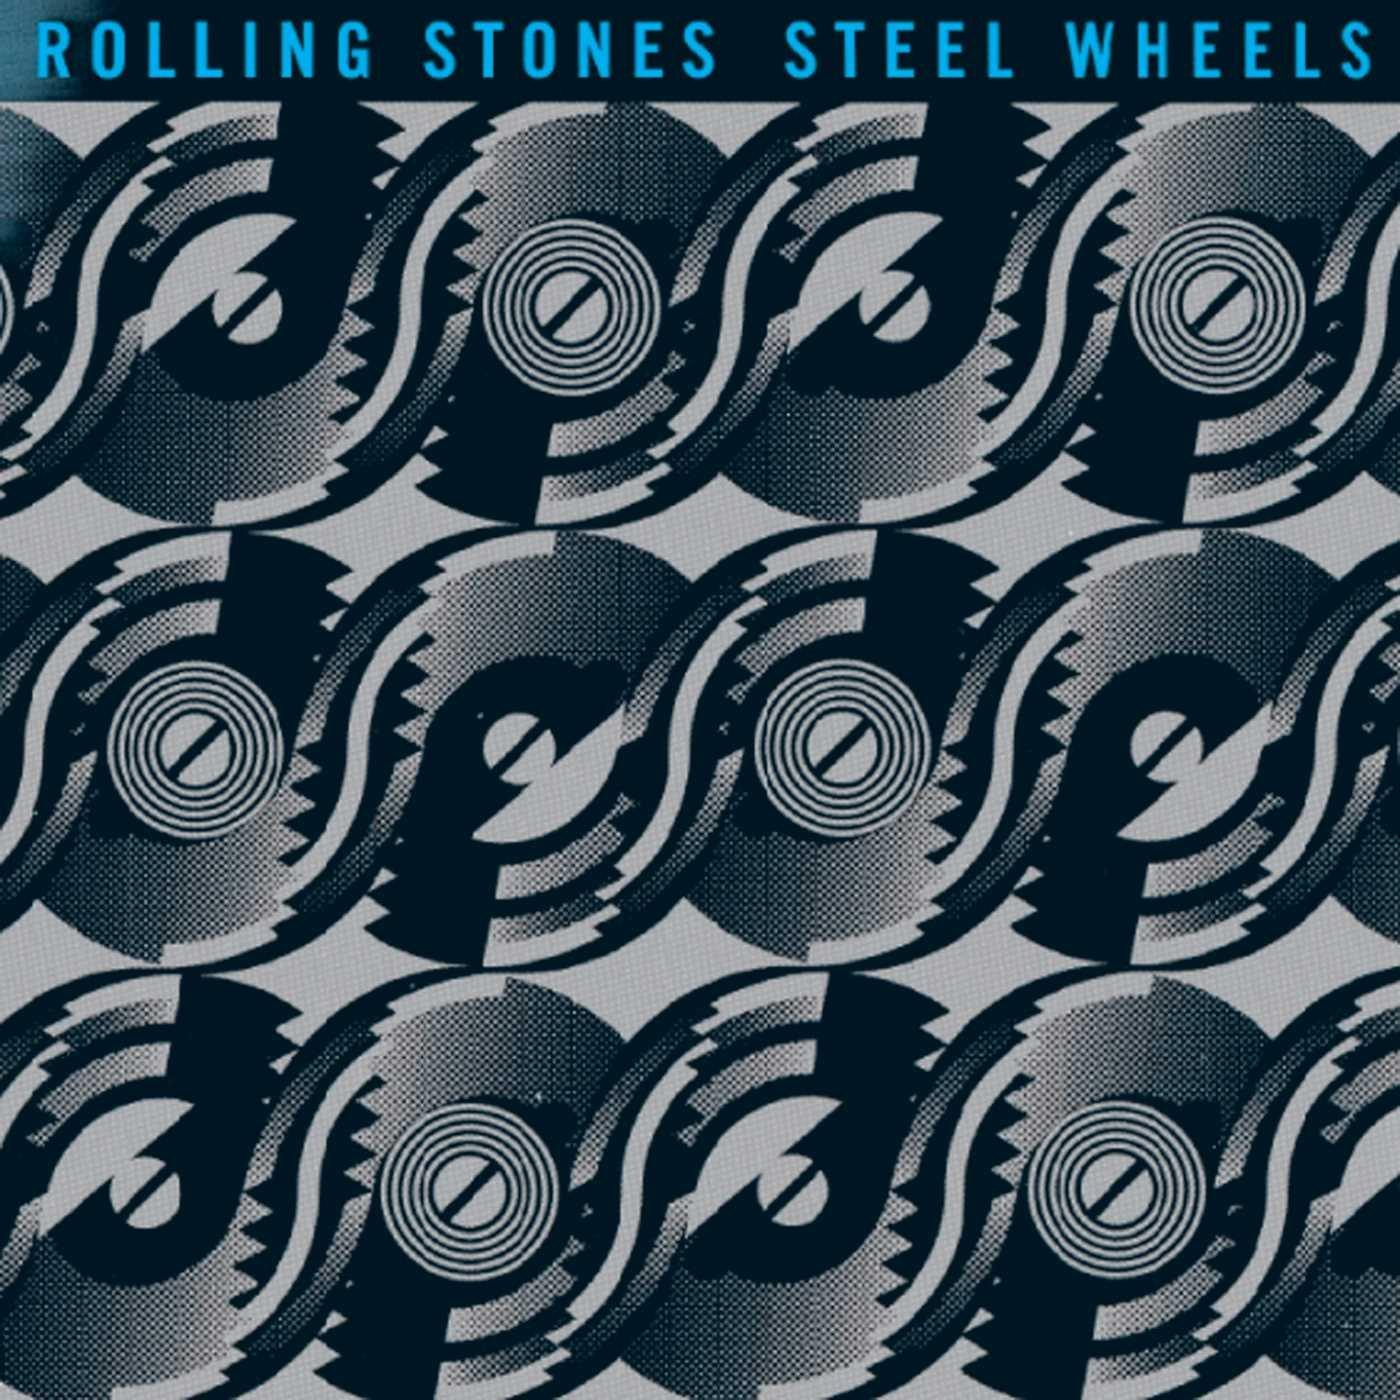 The Rolling Stones - Steel Wheels [LP]